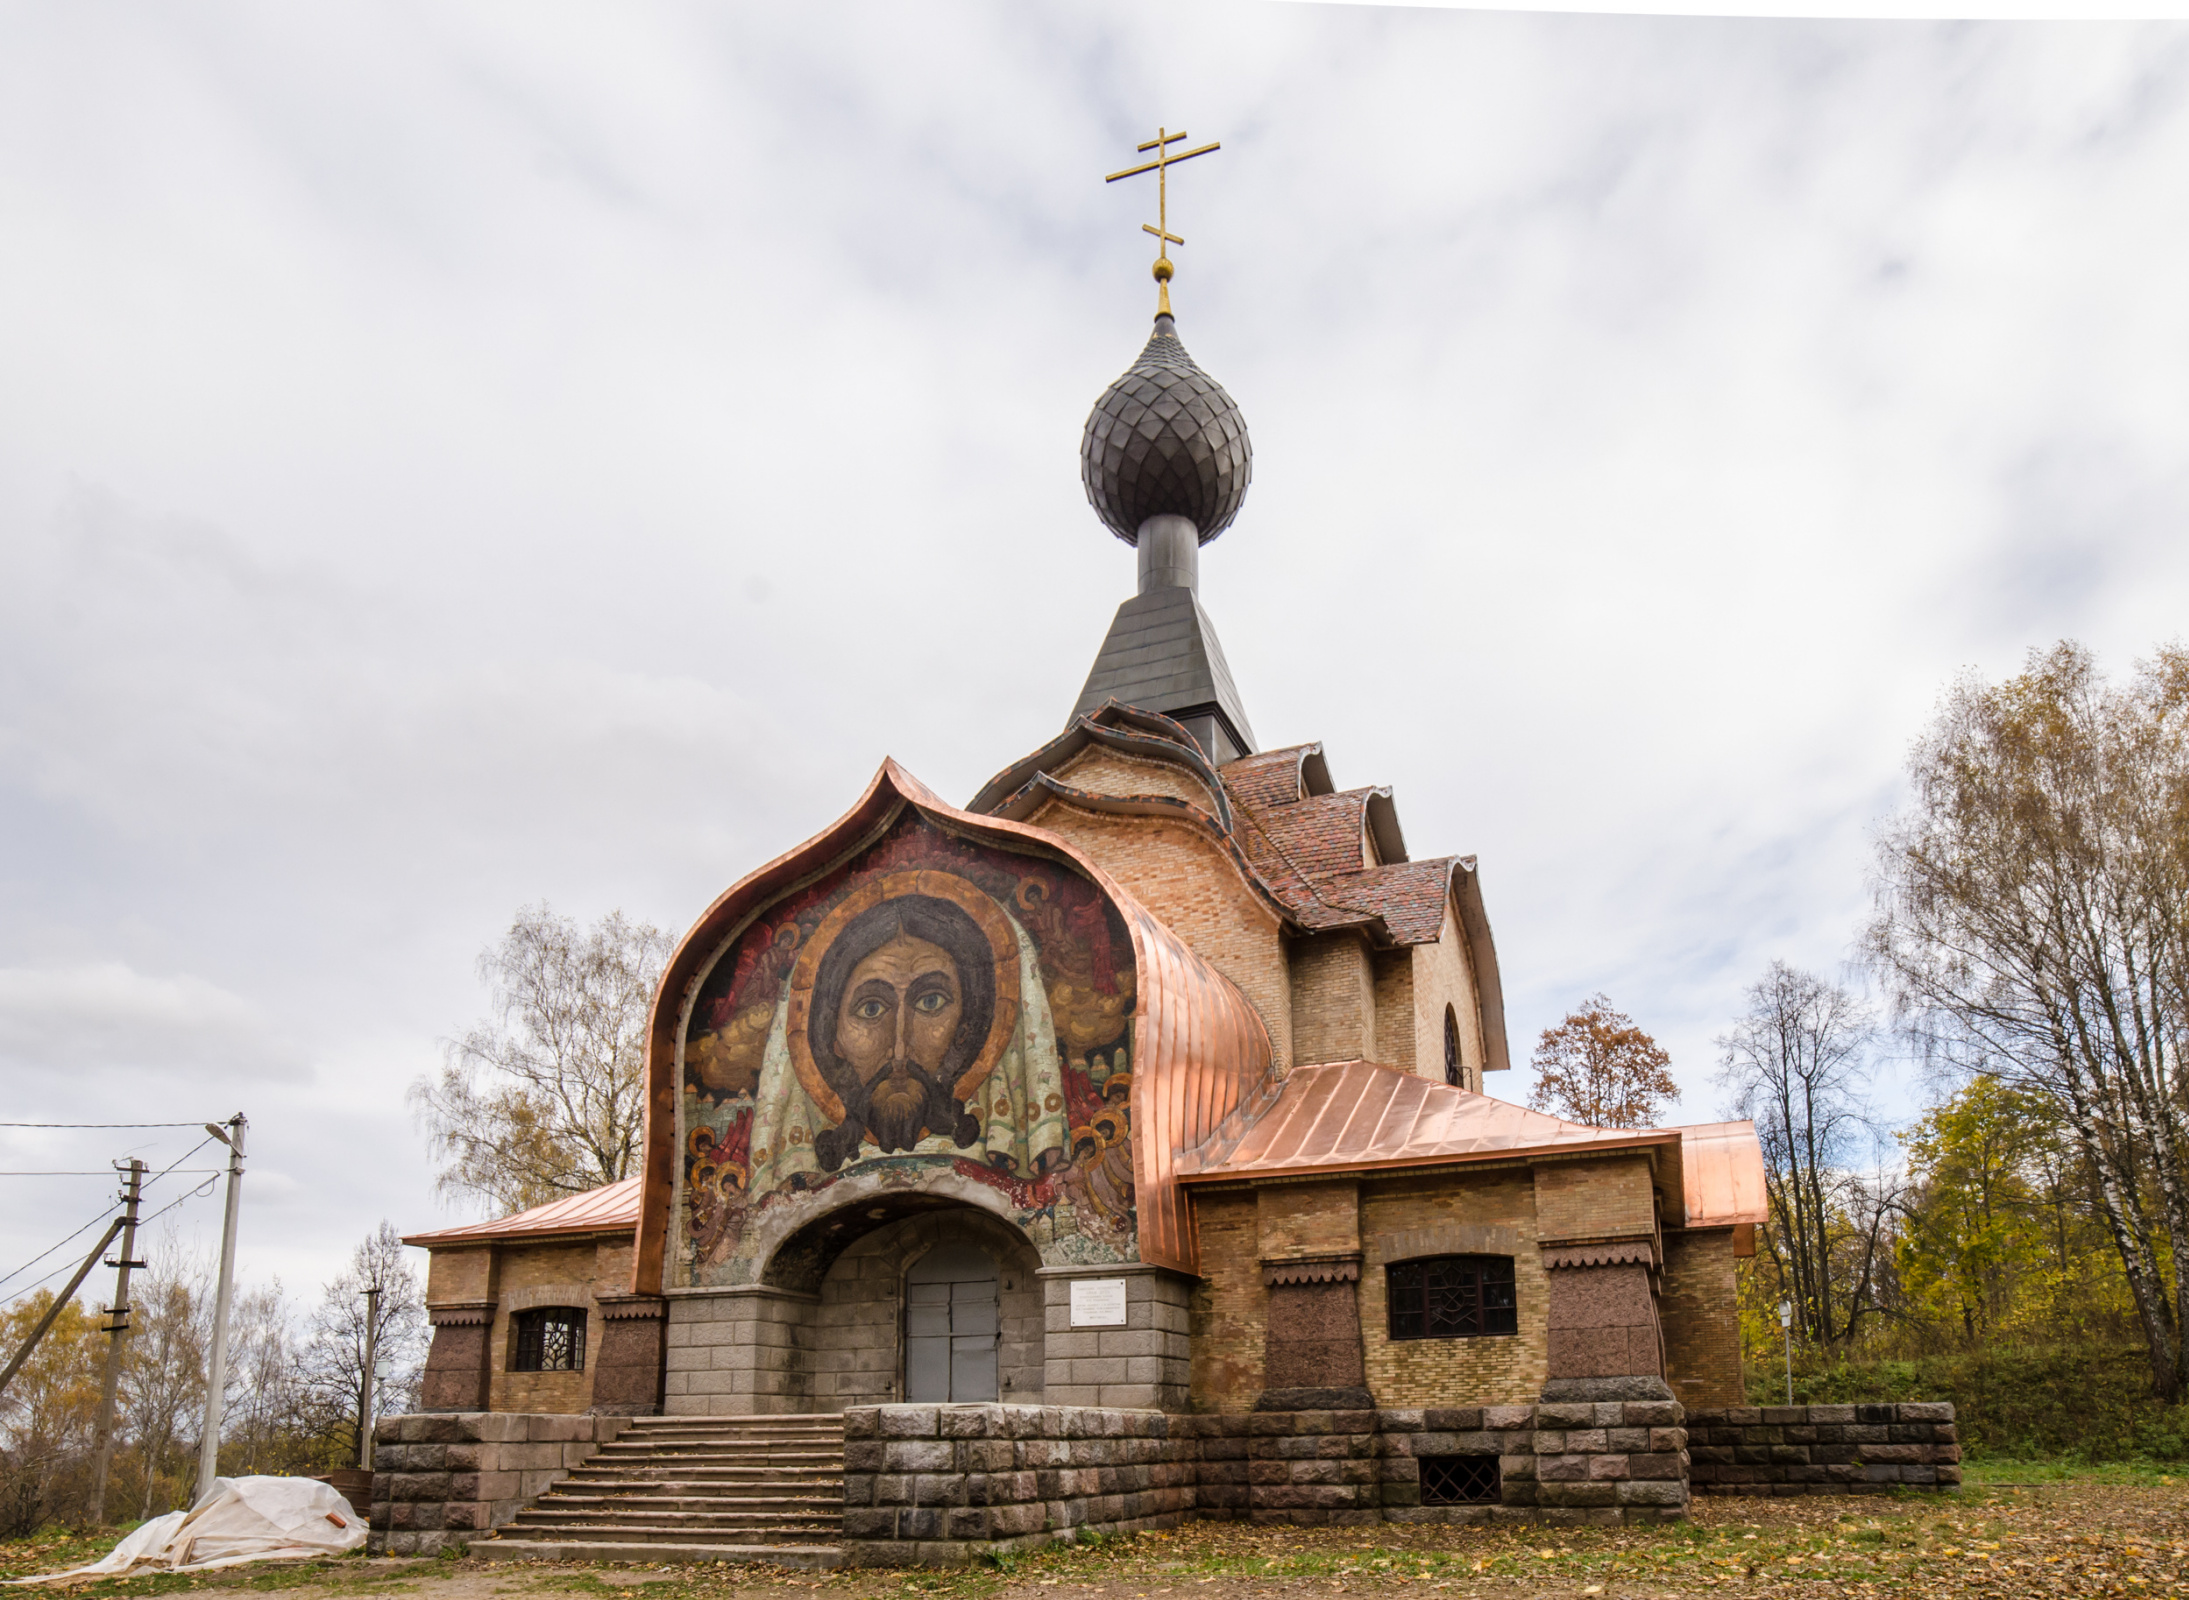 The Church of the Holy Spirit in Talashkino (1910s) was richly decorated with ornamented ceramic til